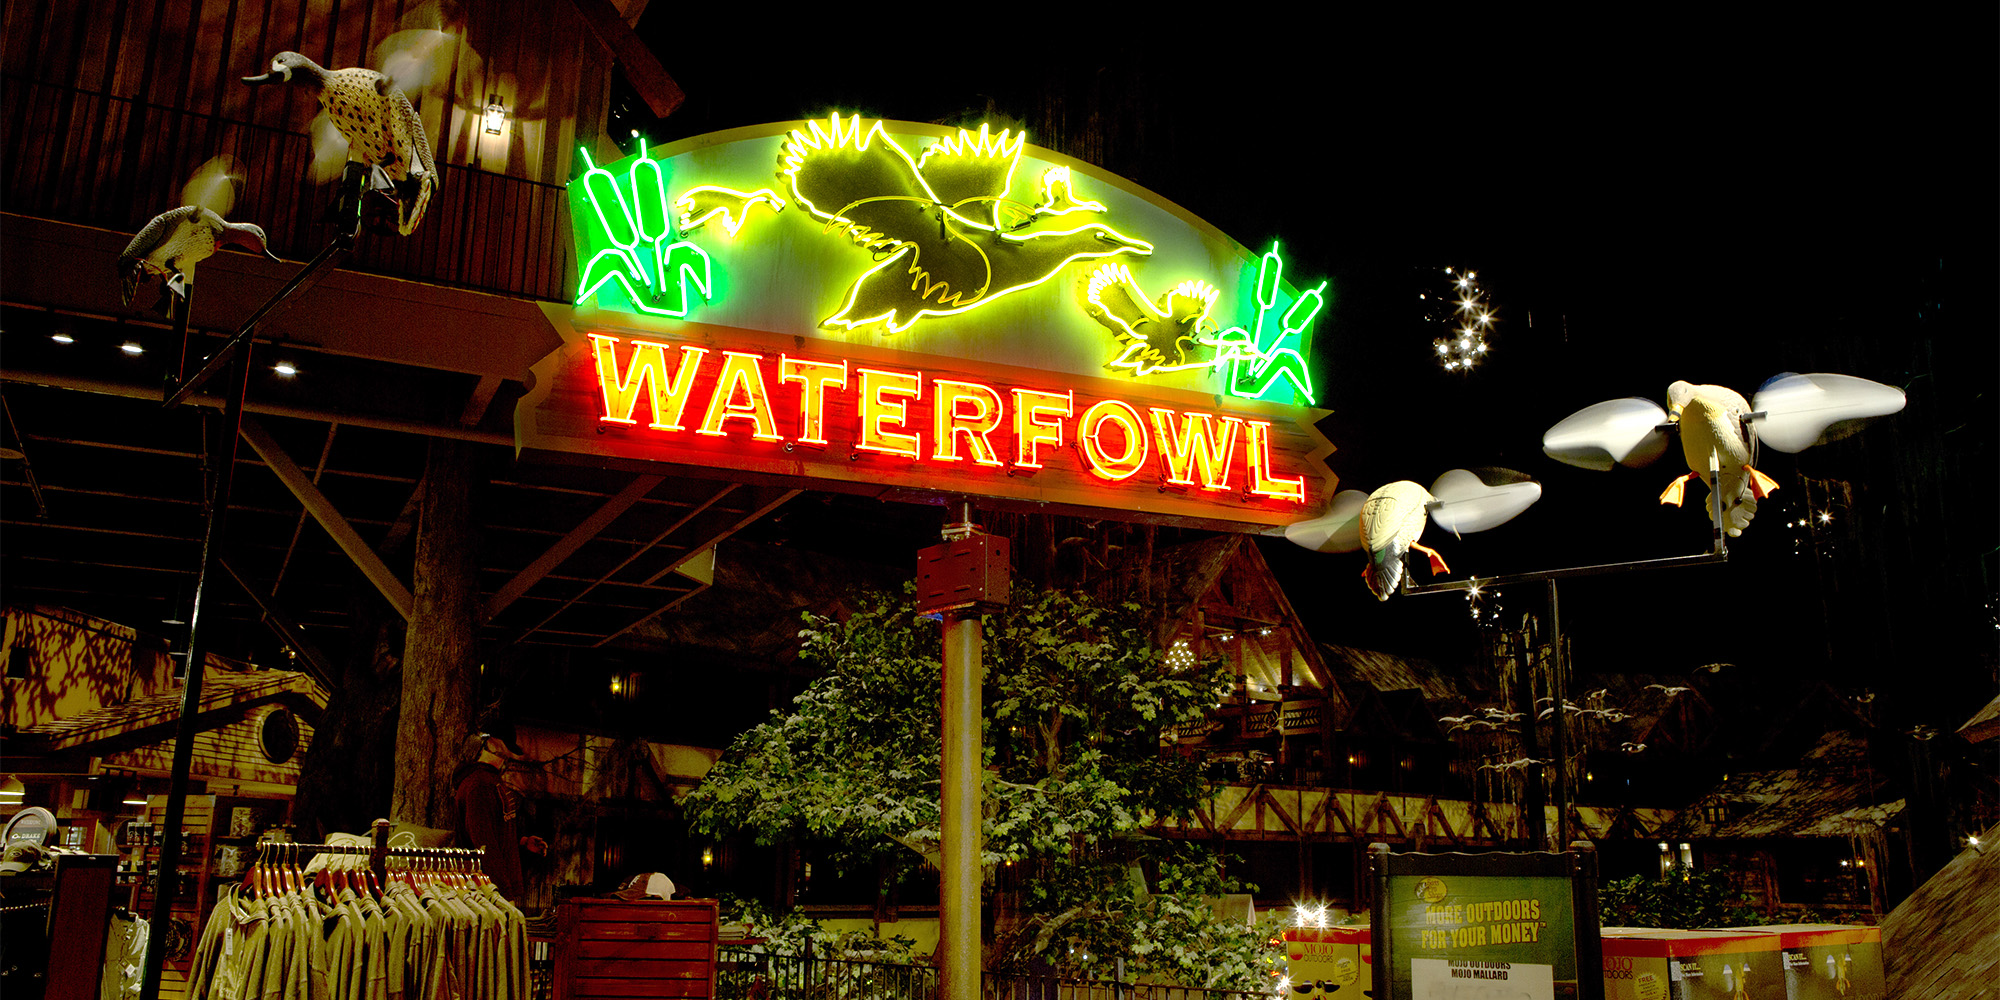 Waterfowl sign_2000x1000